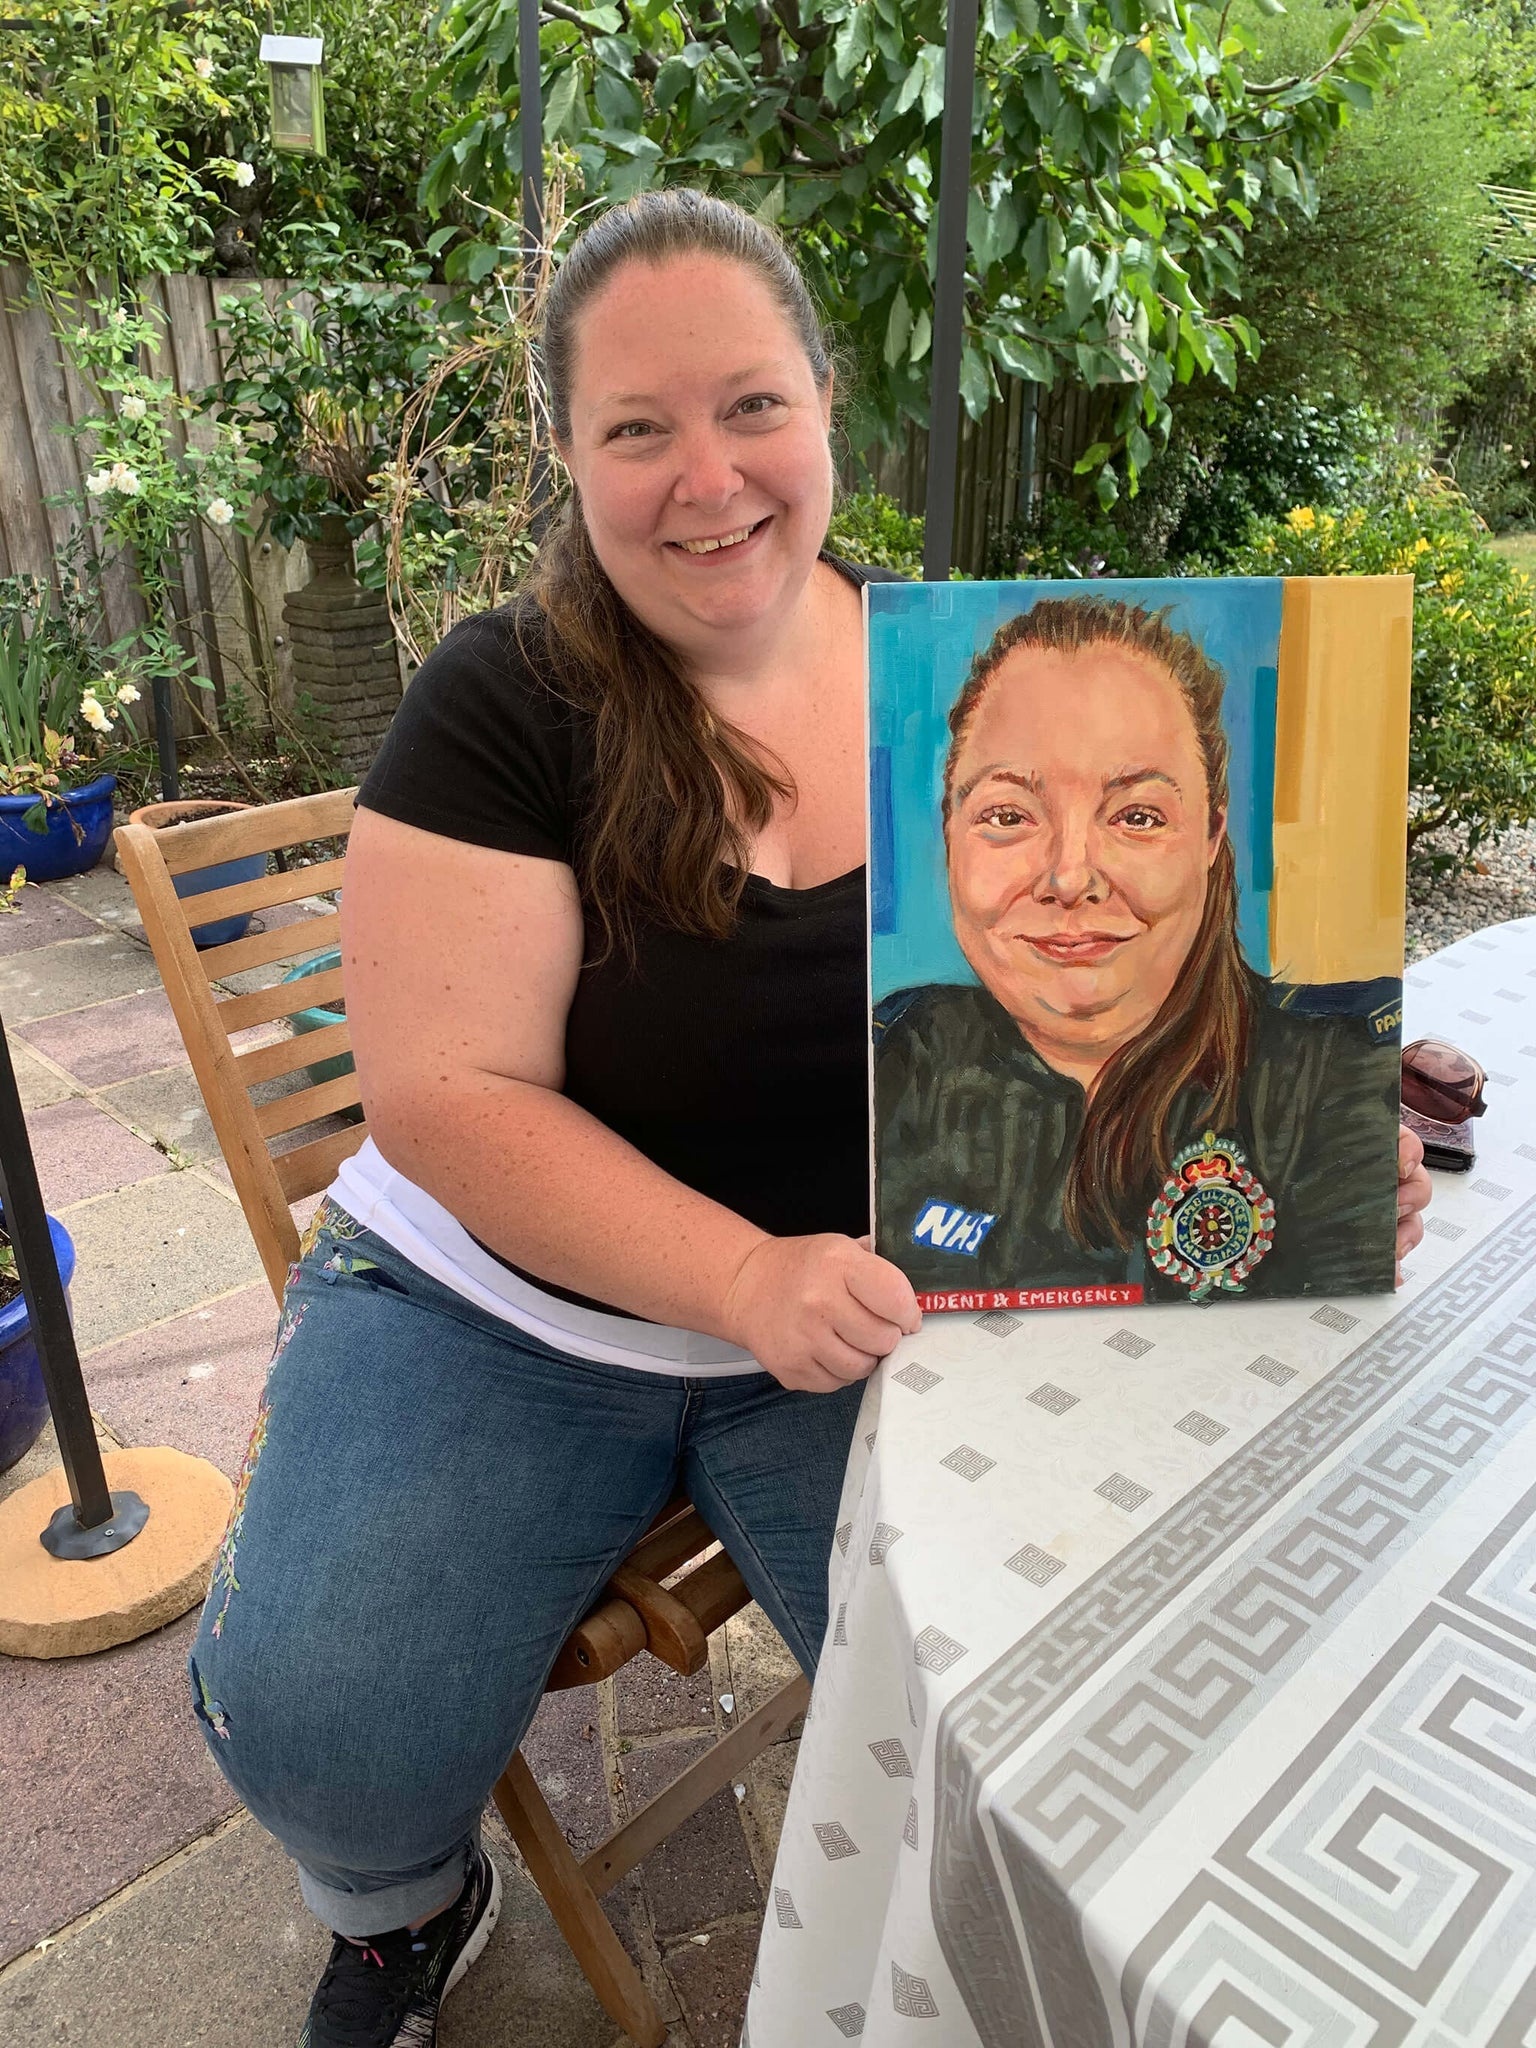 Helen Chiverton NHS Paramedic with her portrait by Stella Tooth